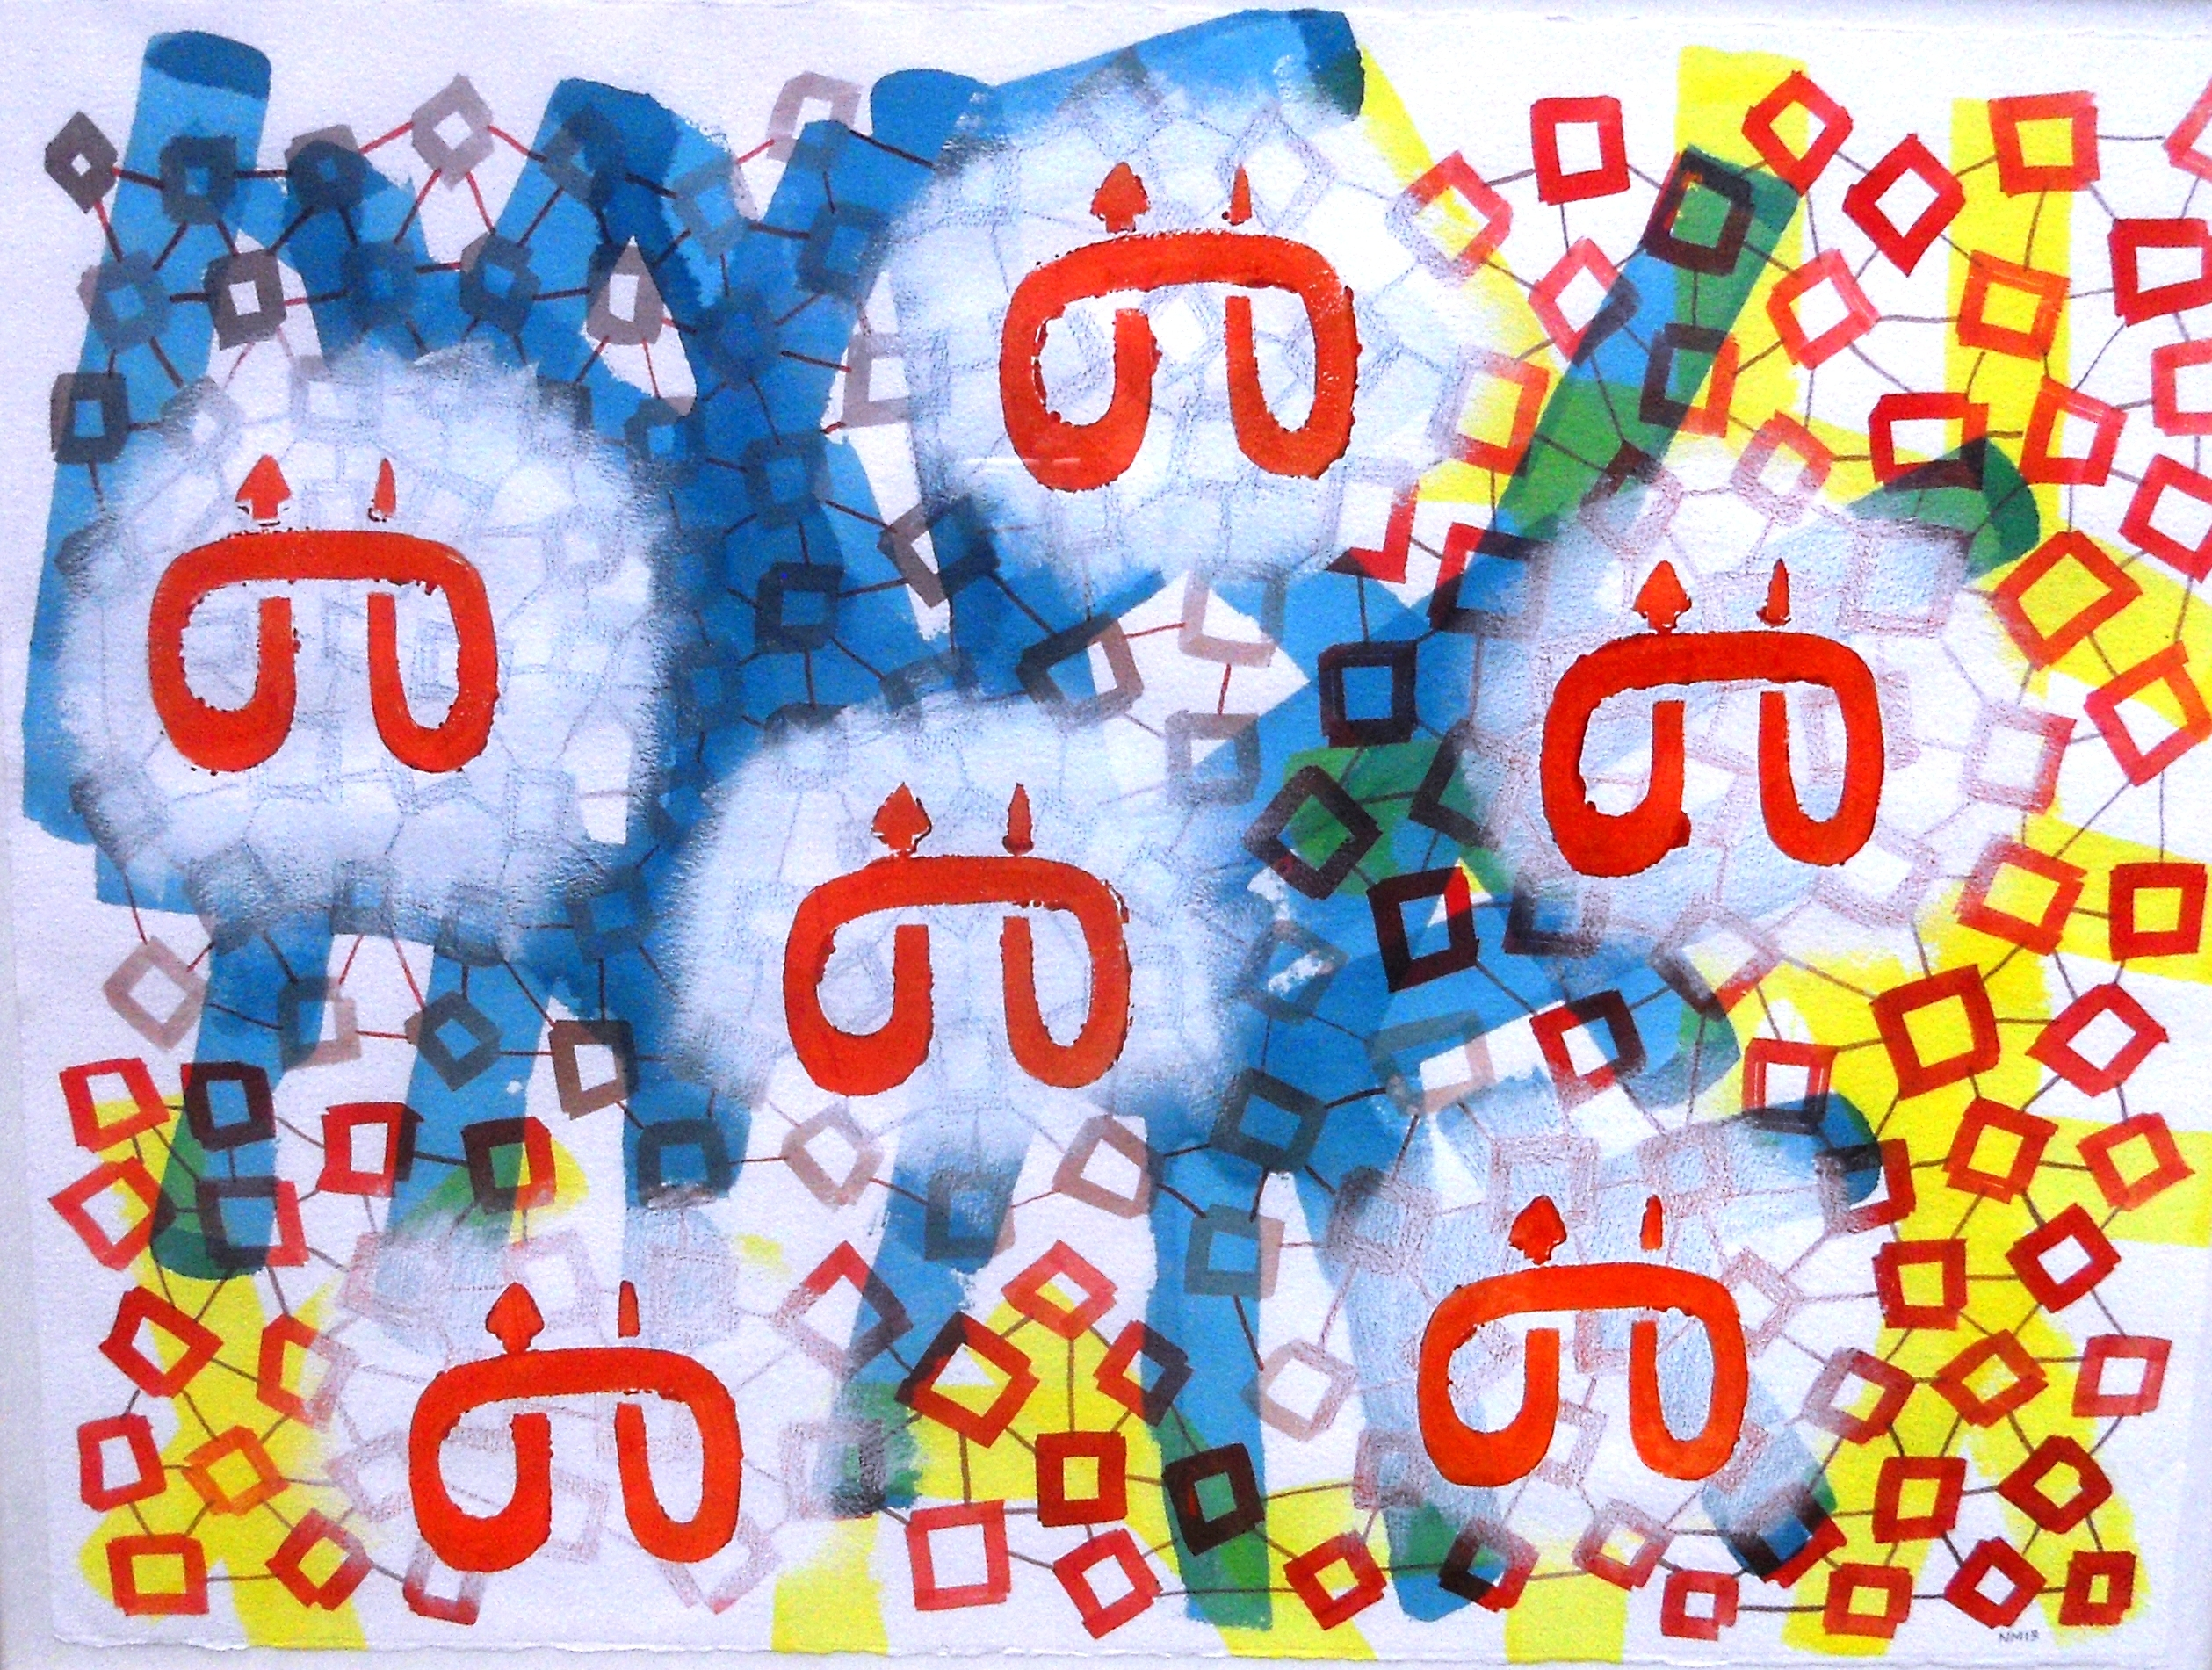 'Six Nairobi Serpents' 2013, Acrylic on paper 76cm x 57cm. Exhibited in Nairobi, 2013.jpg